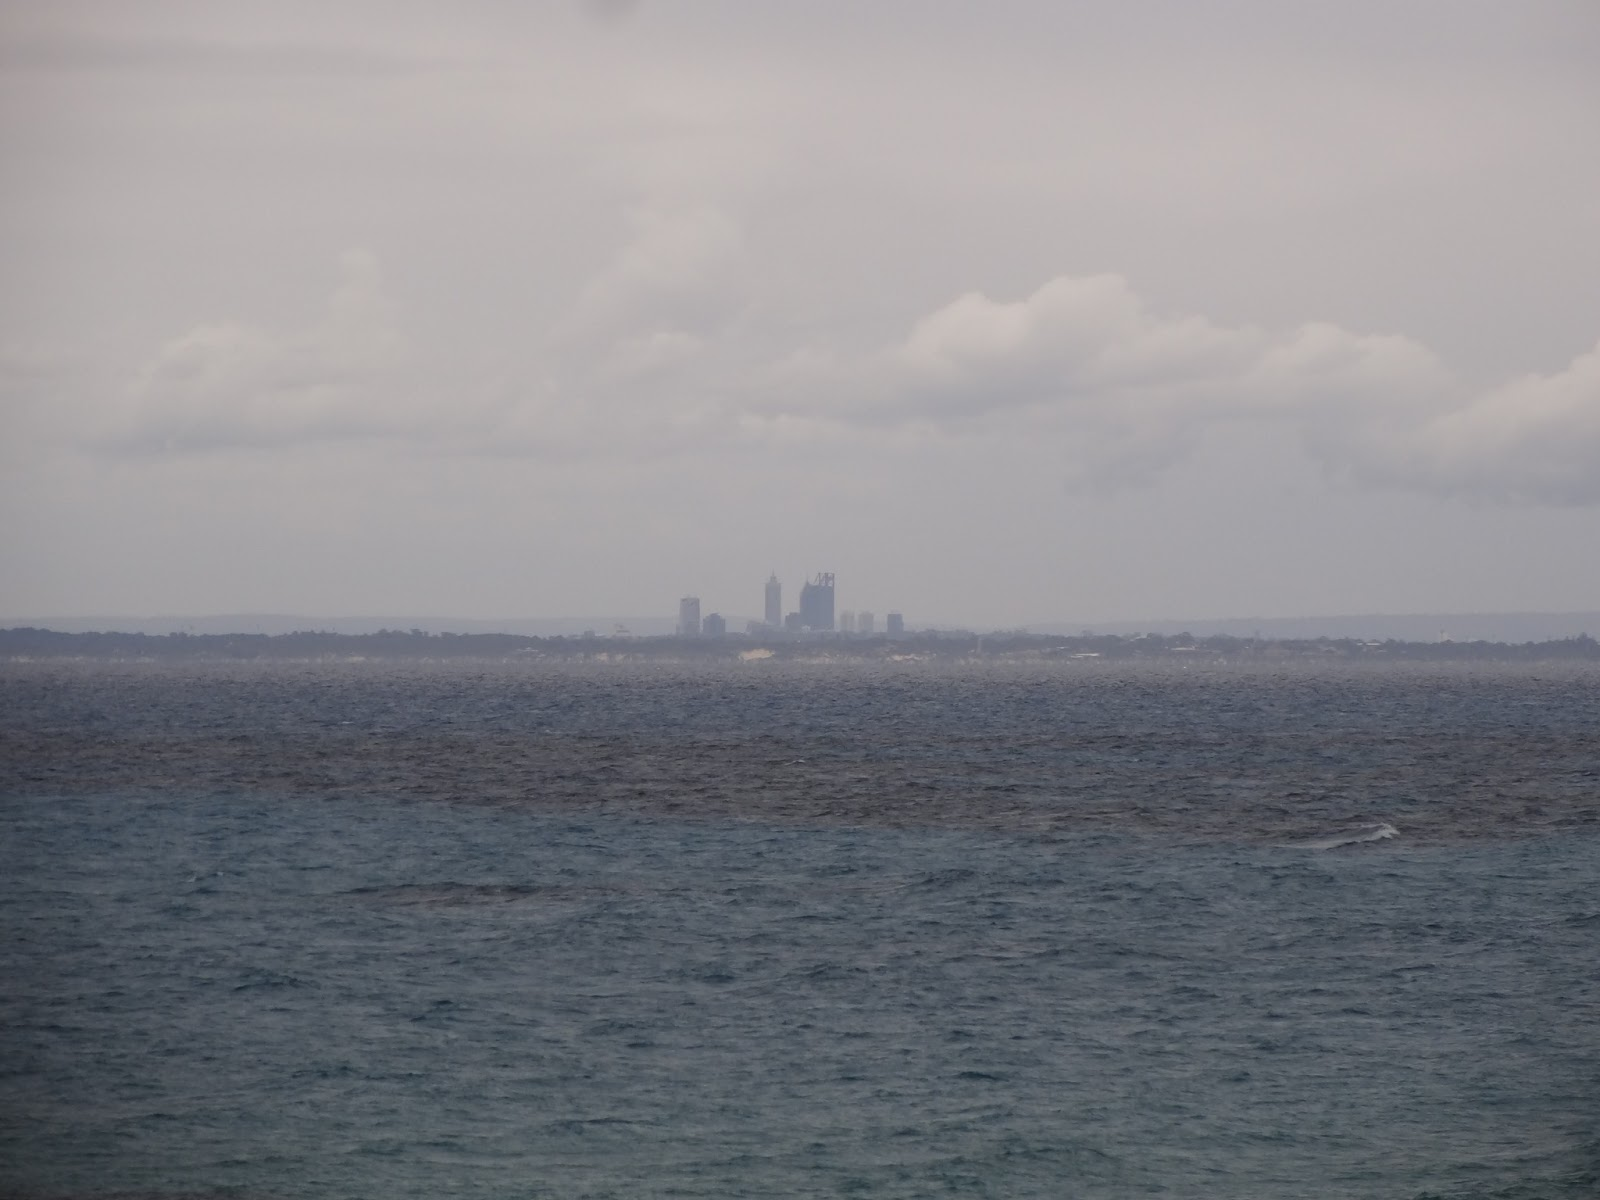 Perth in the distance